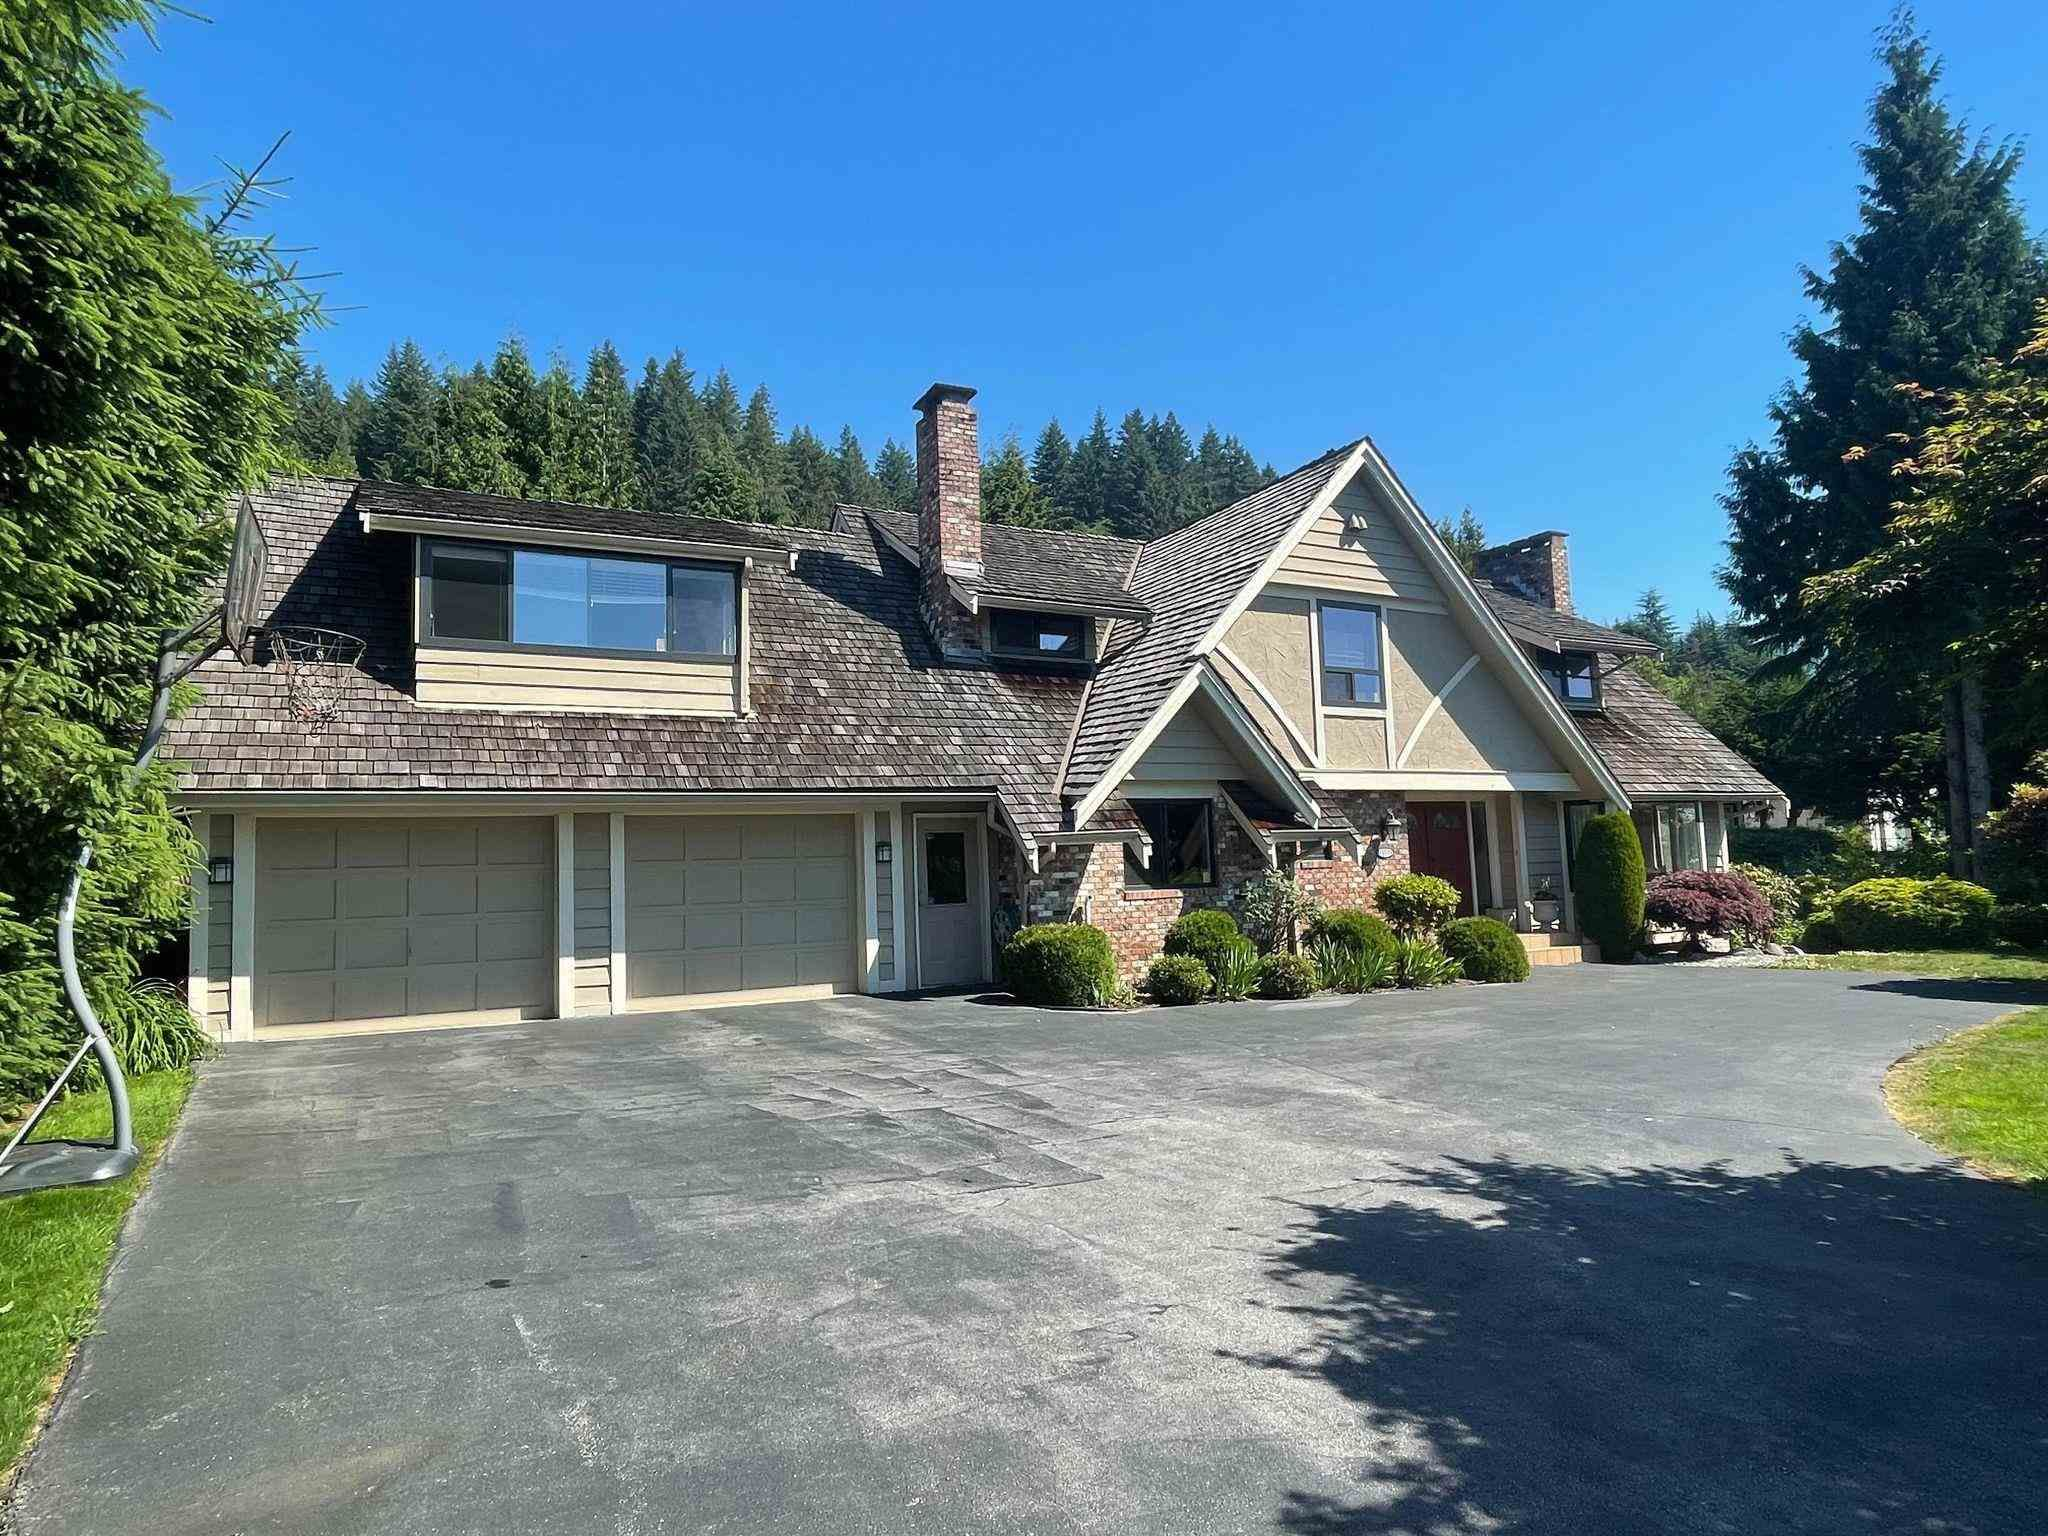 Main Photo: 1127 CRESTLINE Road in West Vancouver: British Properties House for sale : MLS®# R2597545